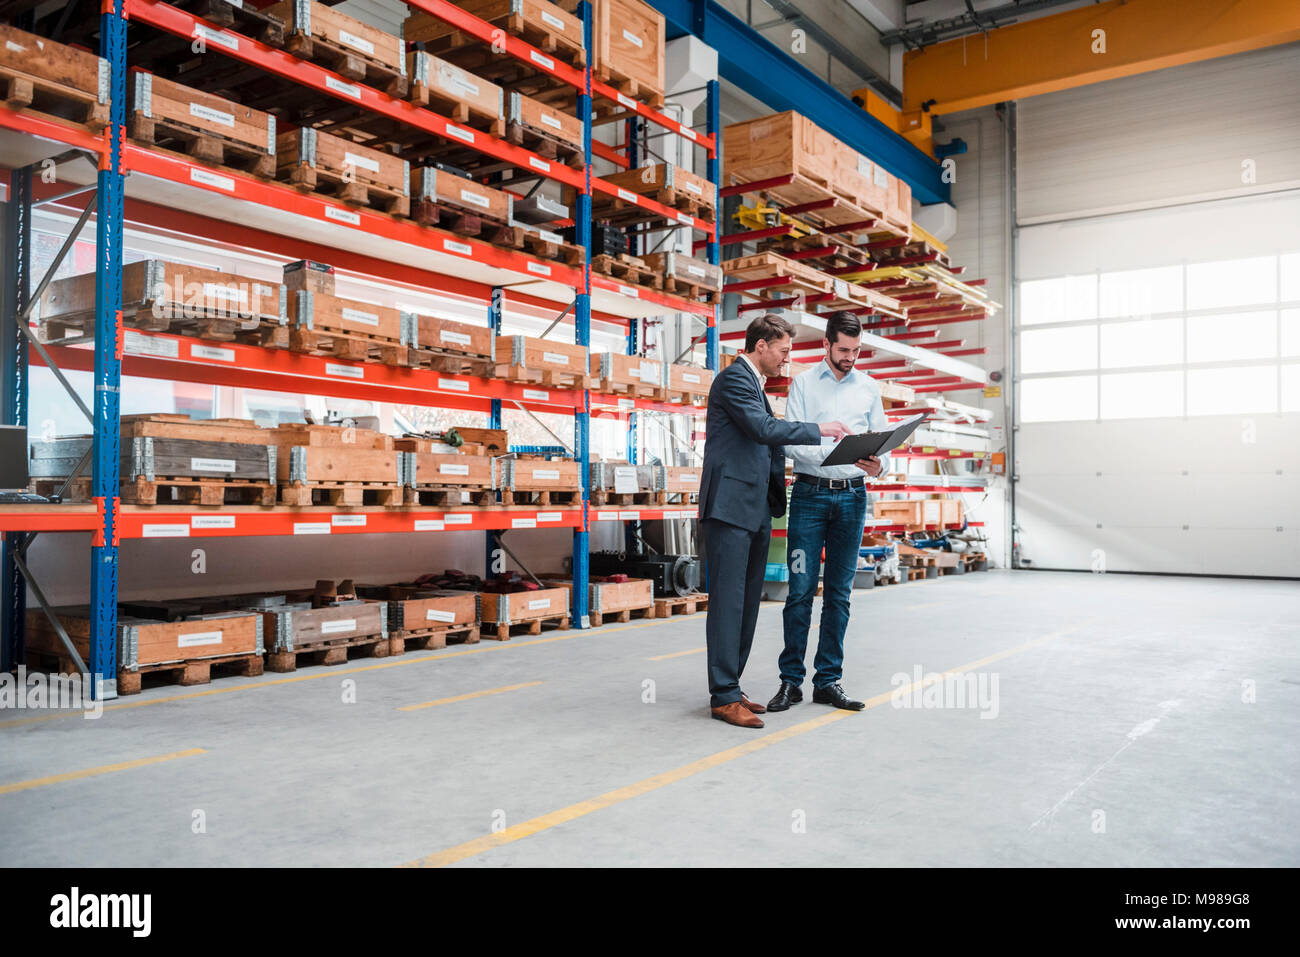 Two men walking and talking in factory shop floor - Stock Image